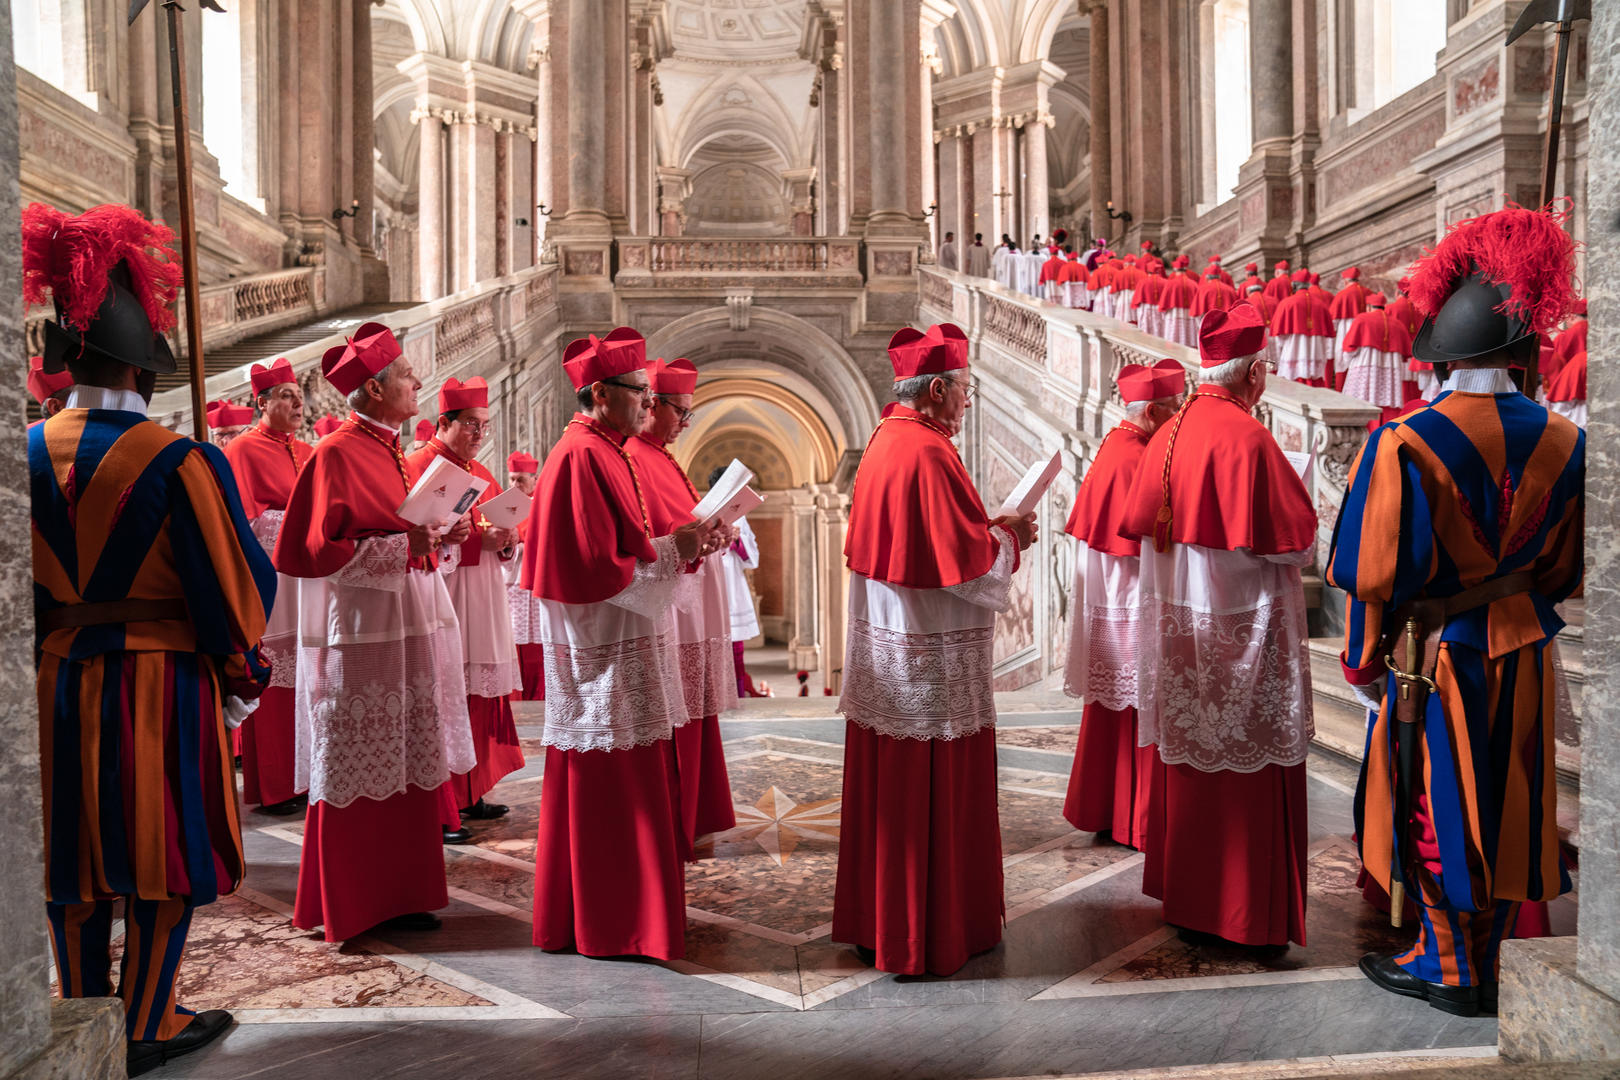 Cinematographer César Charlone on Keeping 'The Two Popes' Visually Compelling